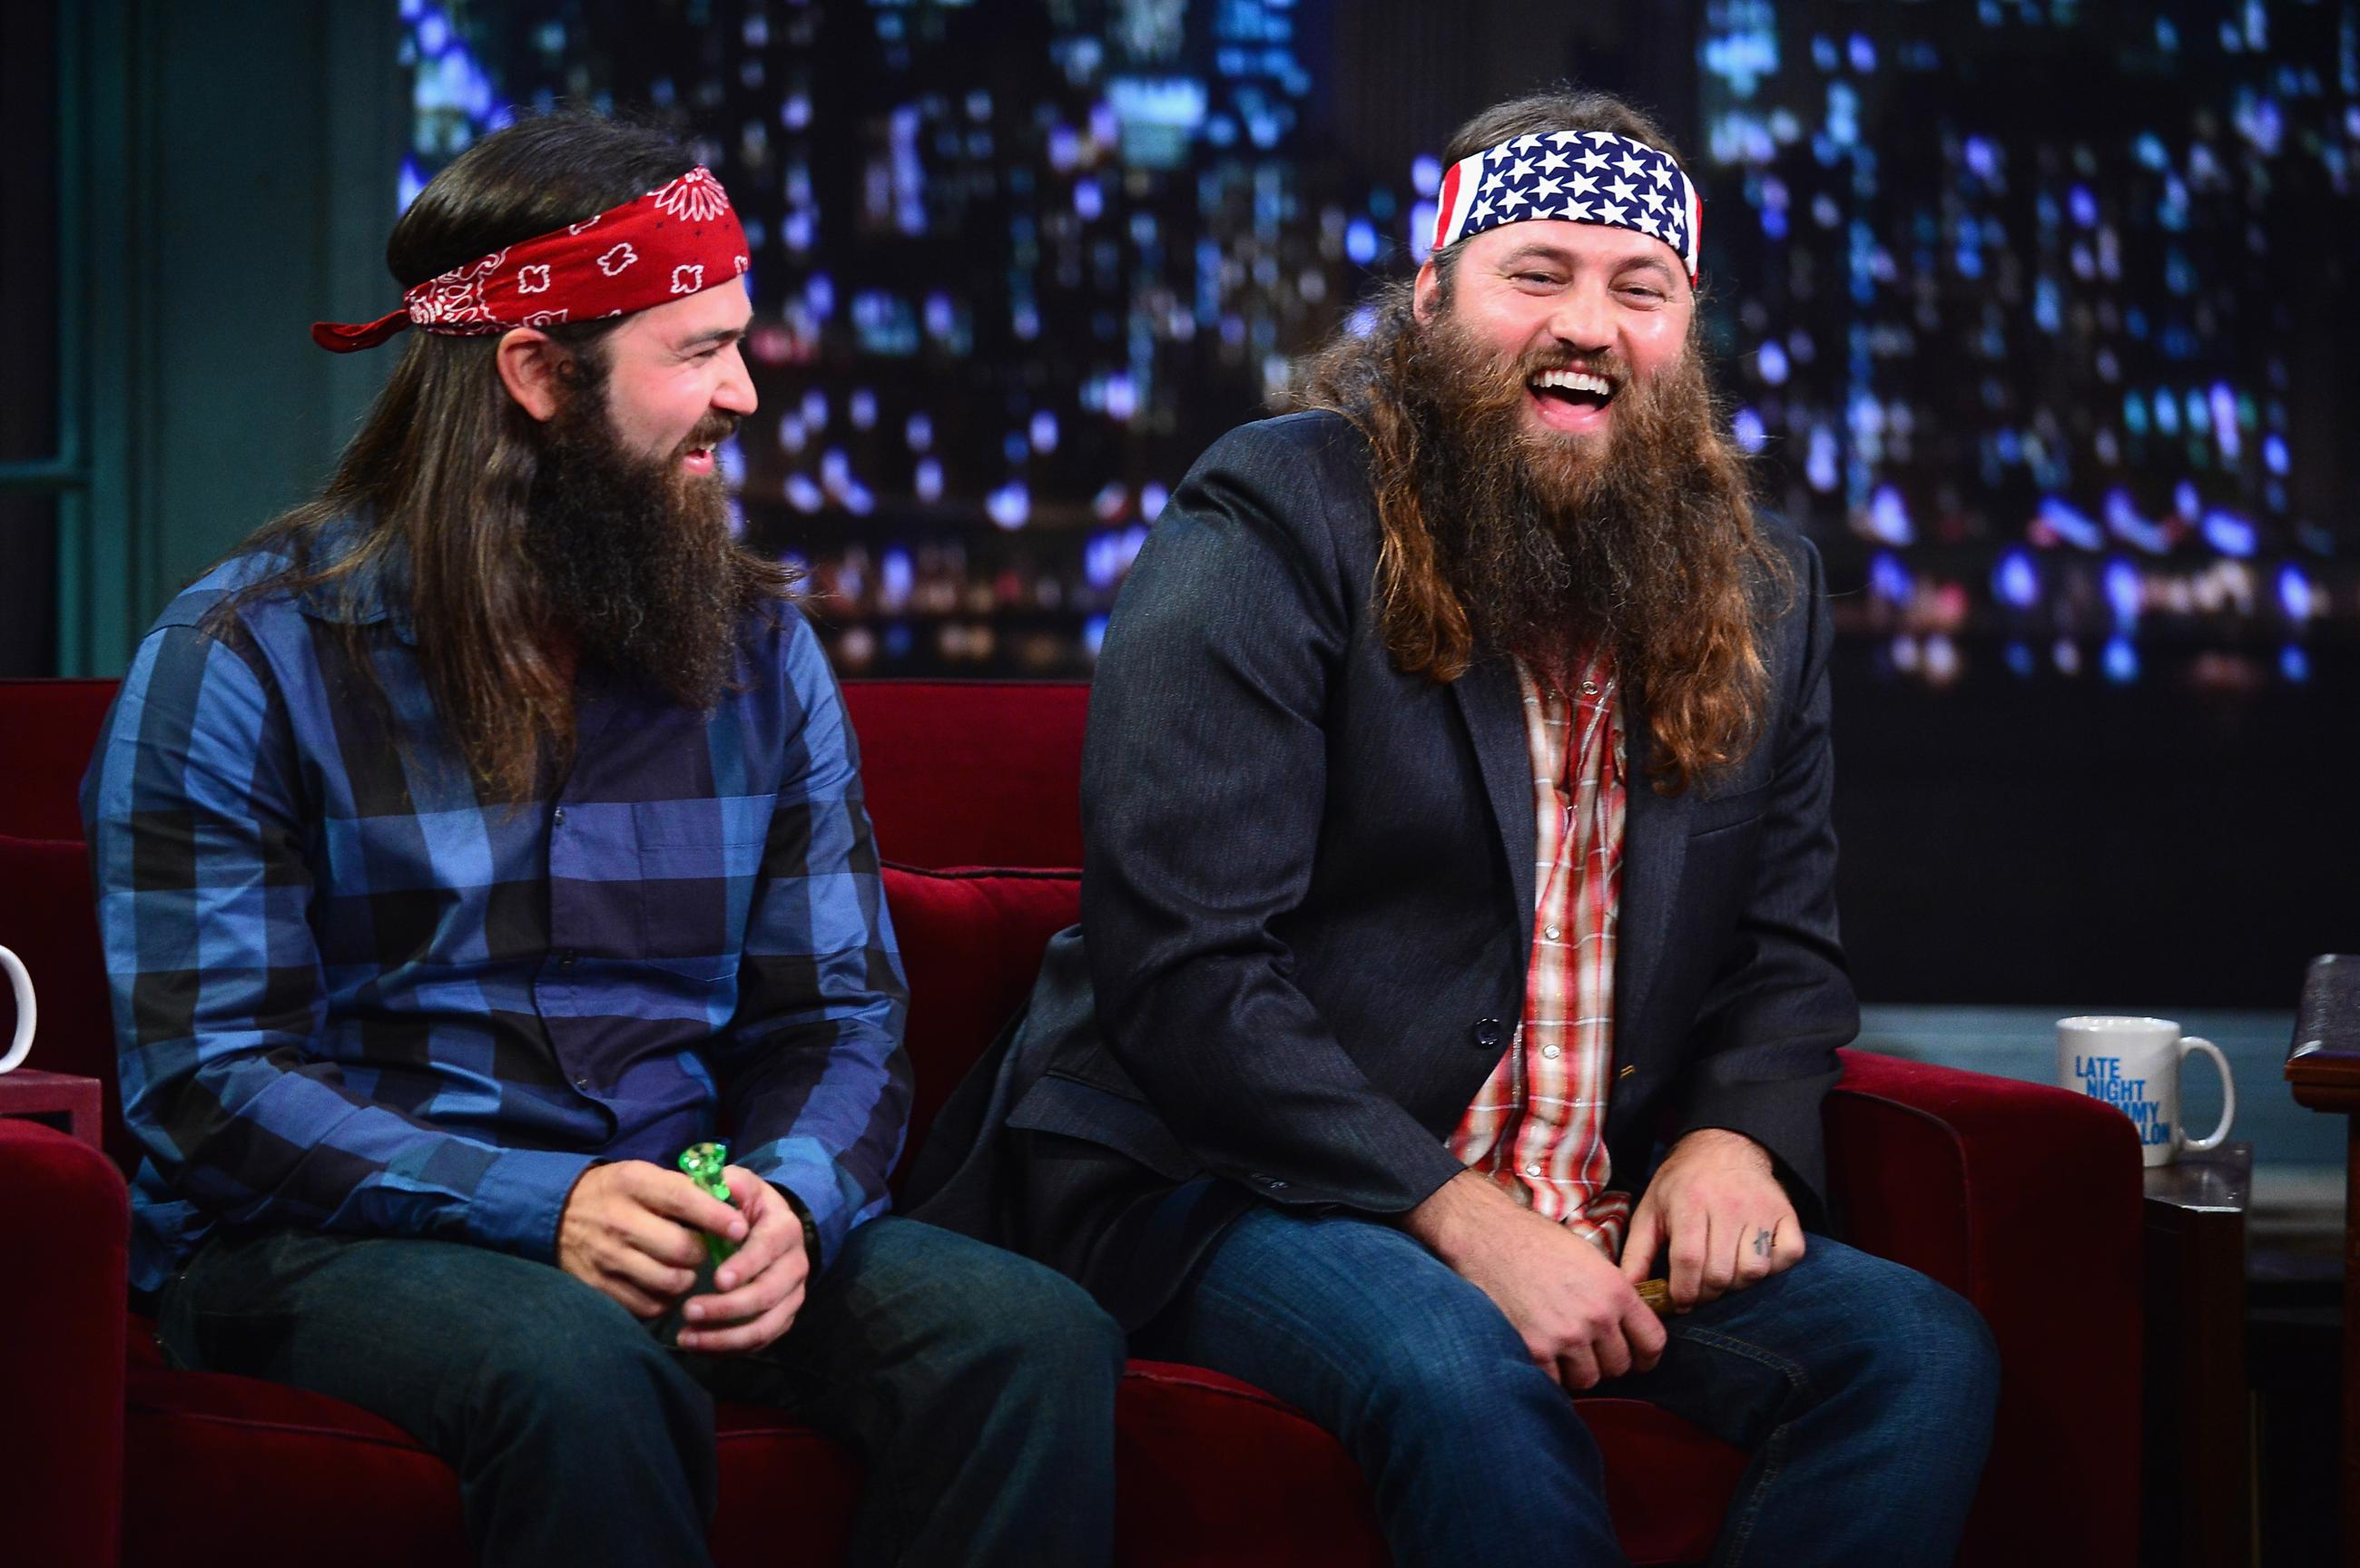 How the 'Duck Dynasty' Candidate Beat the Republican Establishment